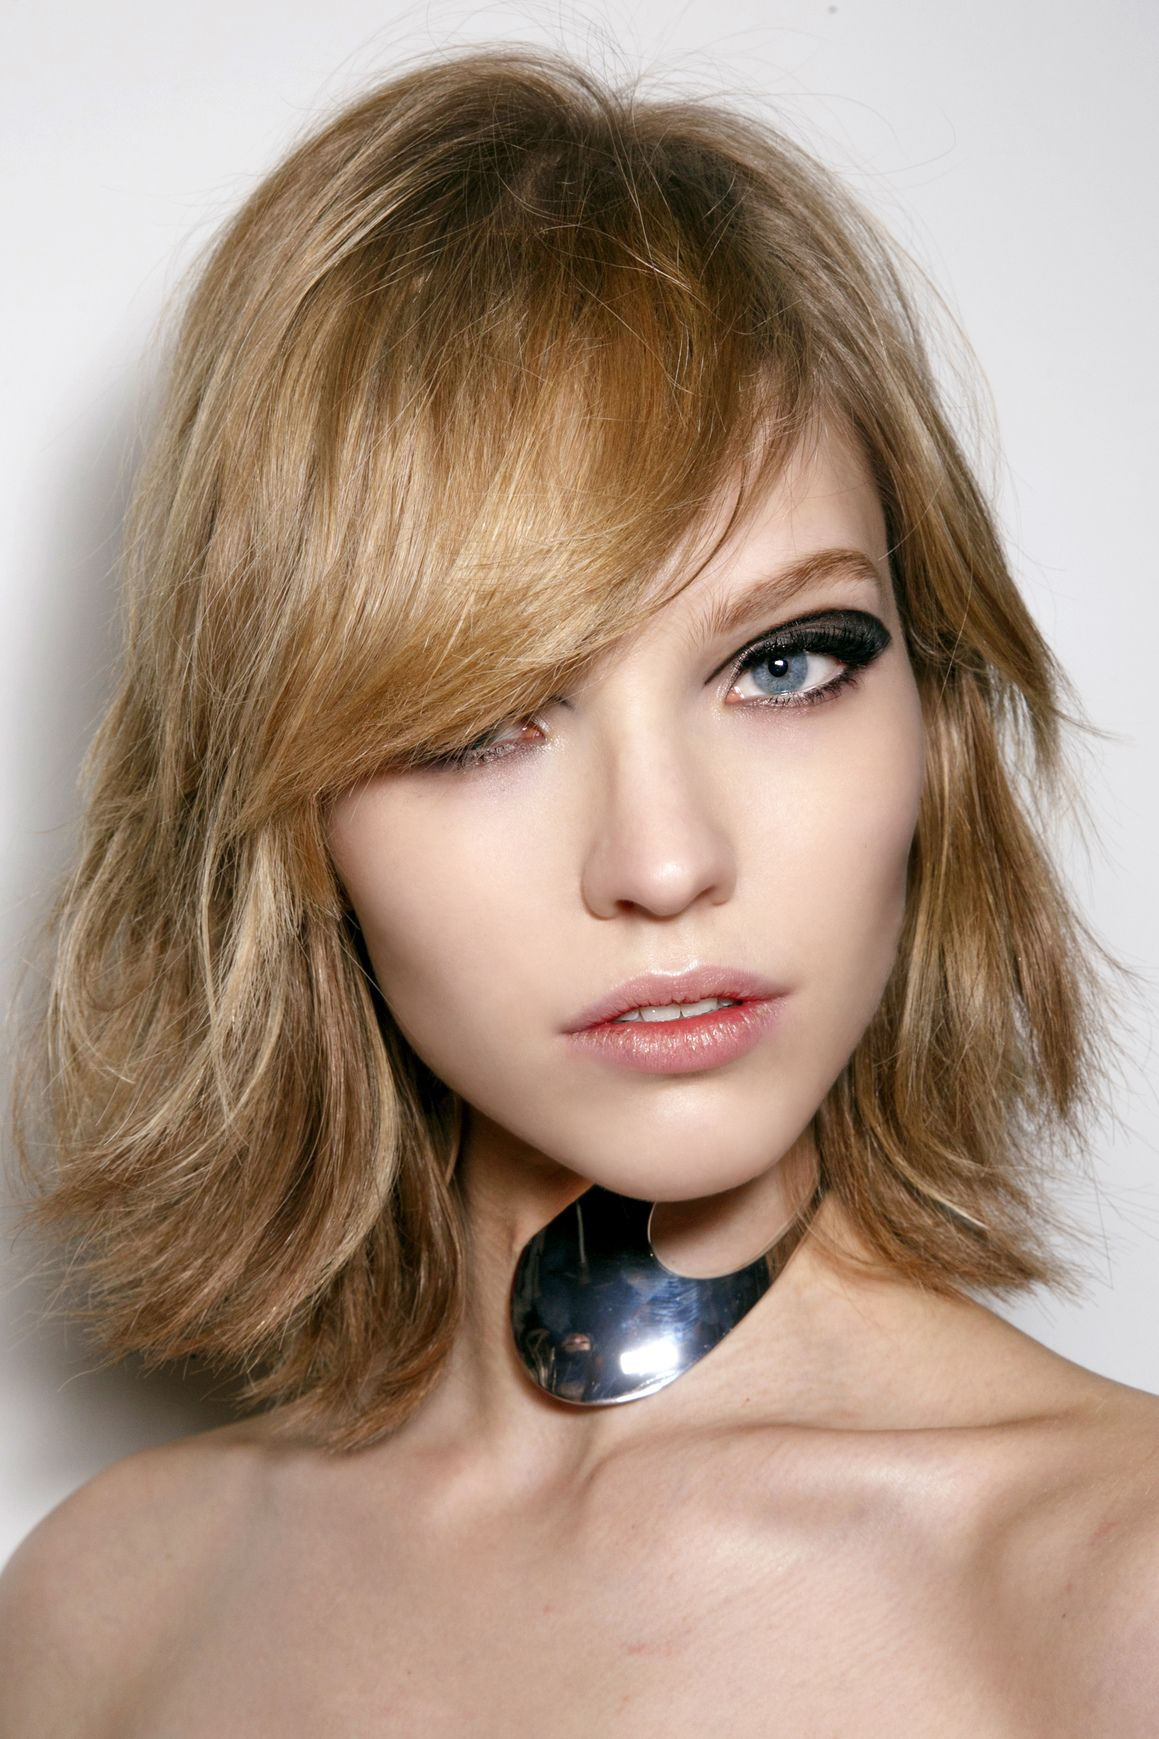 50 of the Hottest Summer Hairstyles For ShortHair pics